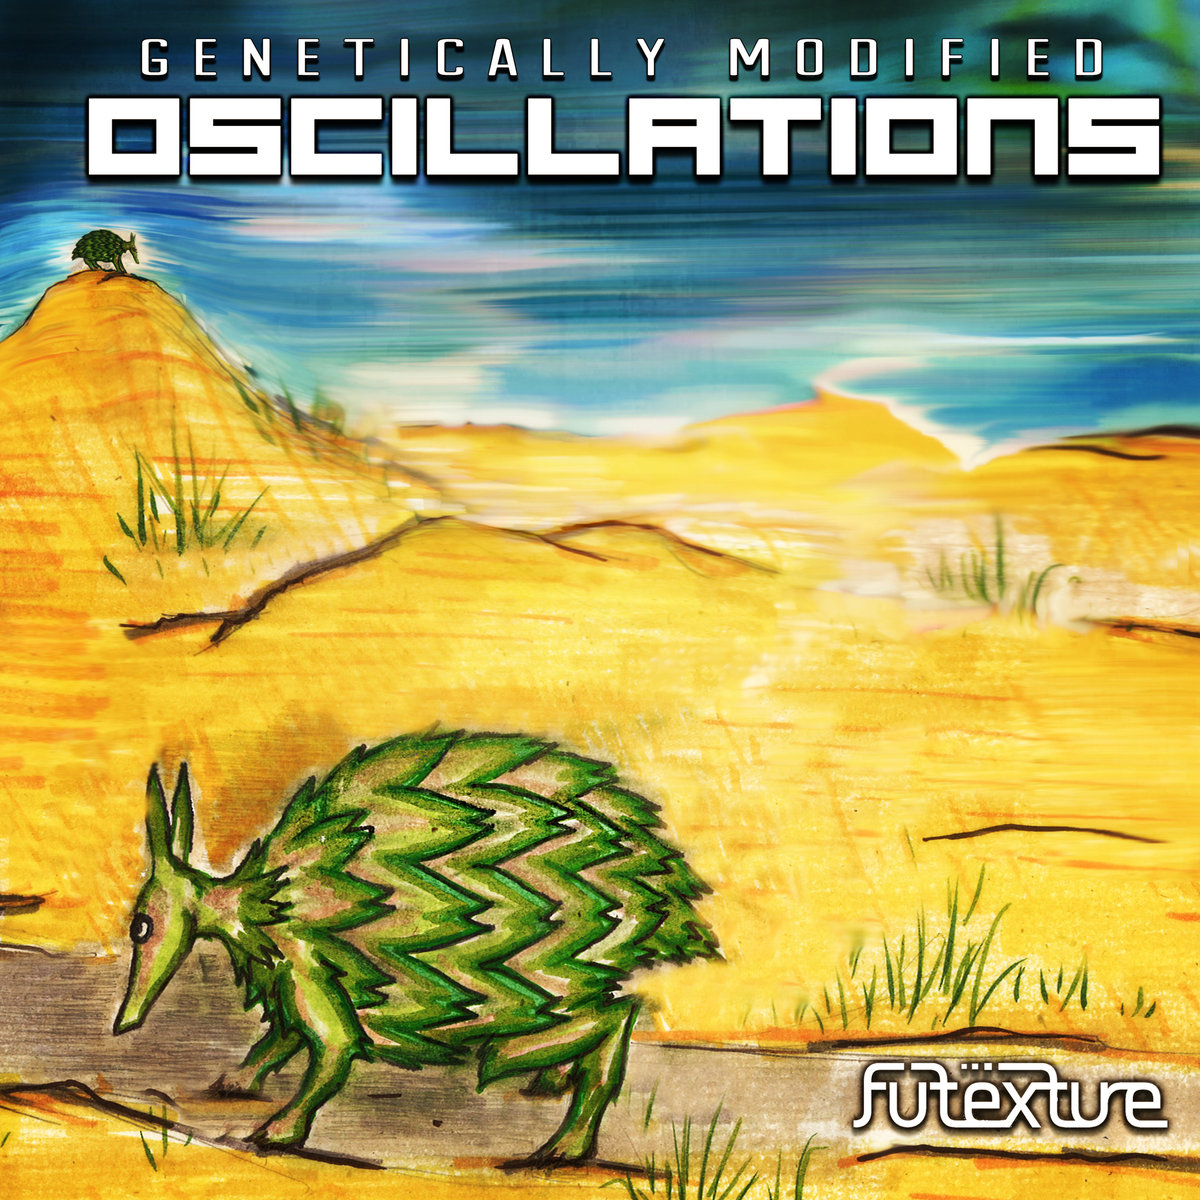 Futexture - Asparagoose @ 'Genetically Modified Oscillations' album (bass, breaks)